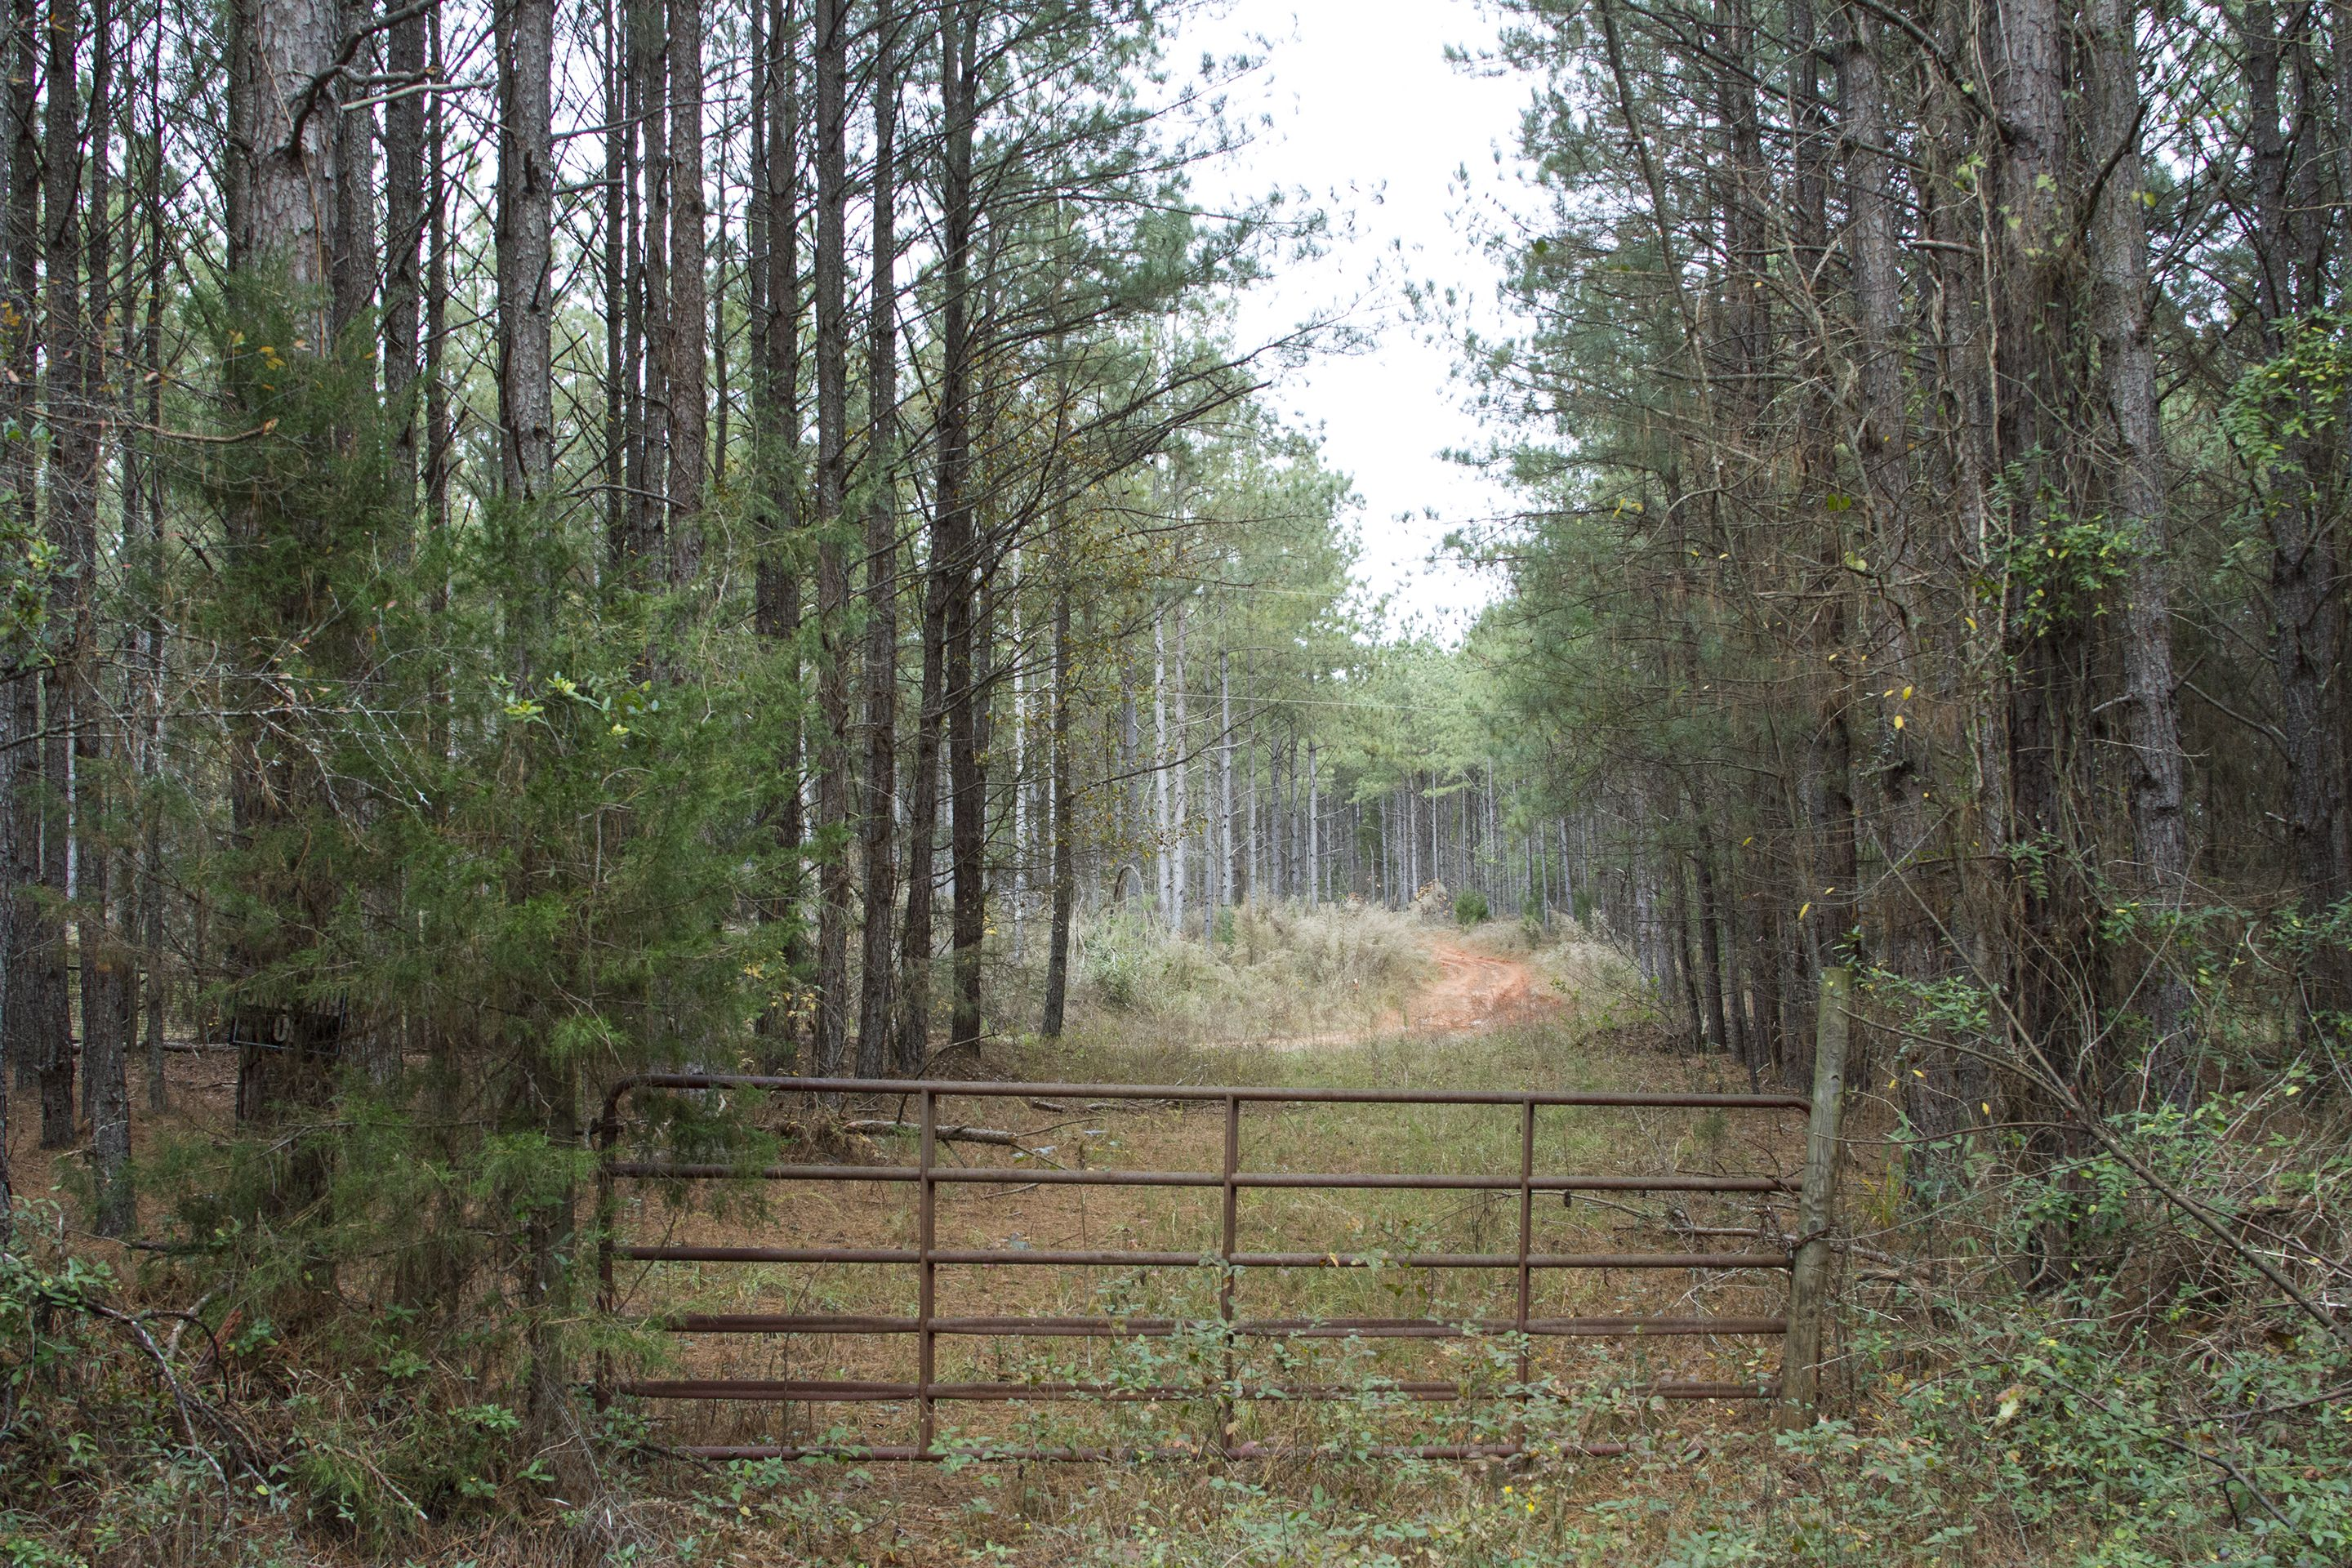 190 Acres Of Farm Tree Land For Sale In Comer Georgia Land Century Land For Sale Selling Real Estate Residential Land